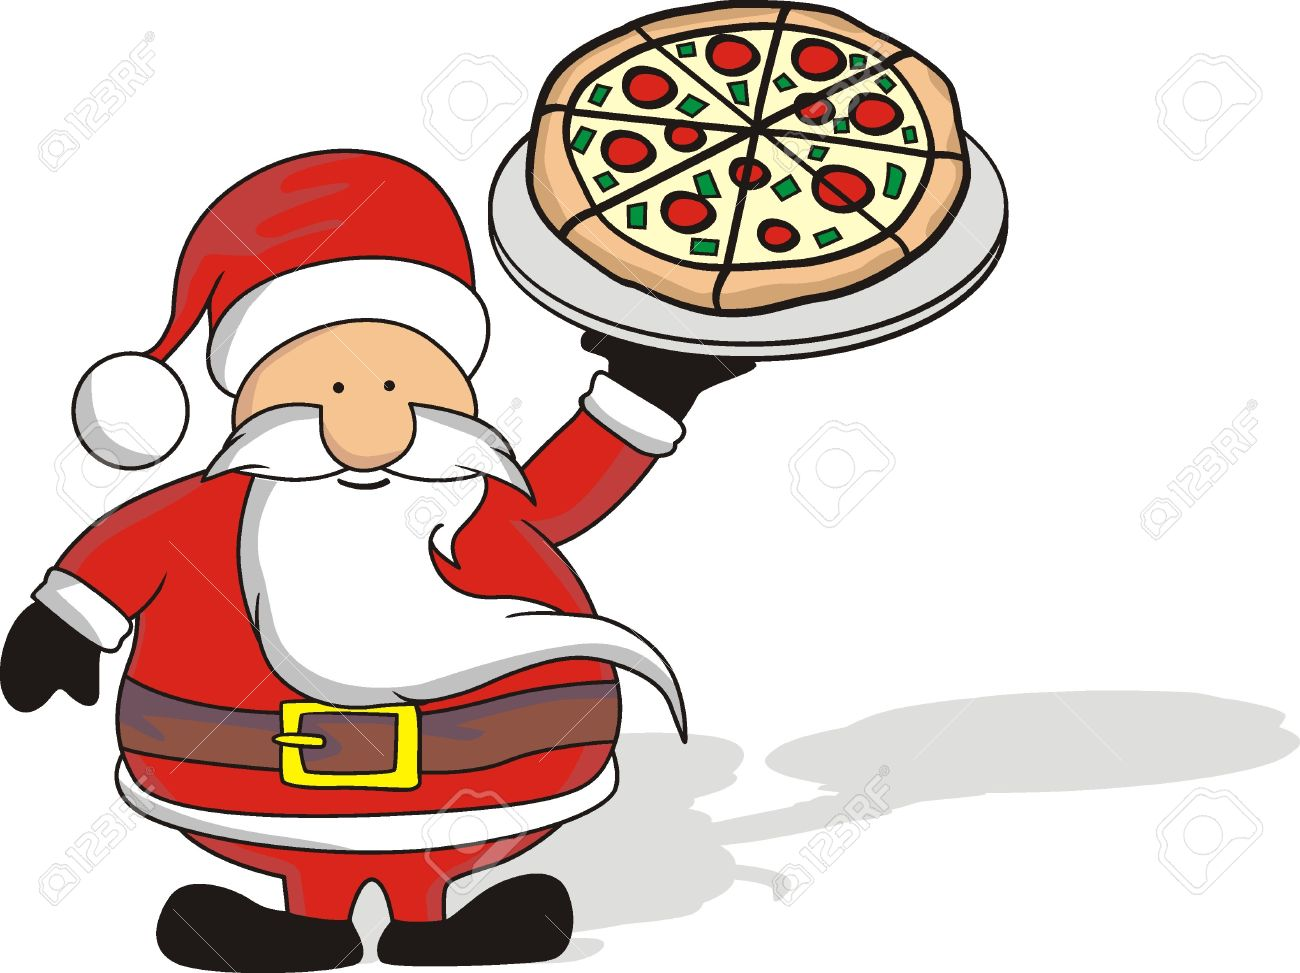 santa and pizza.